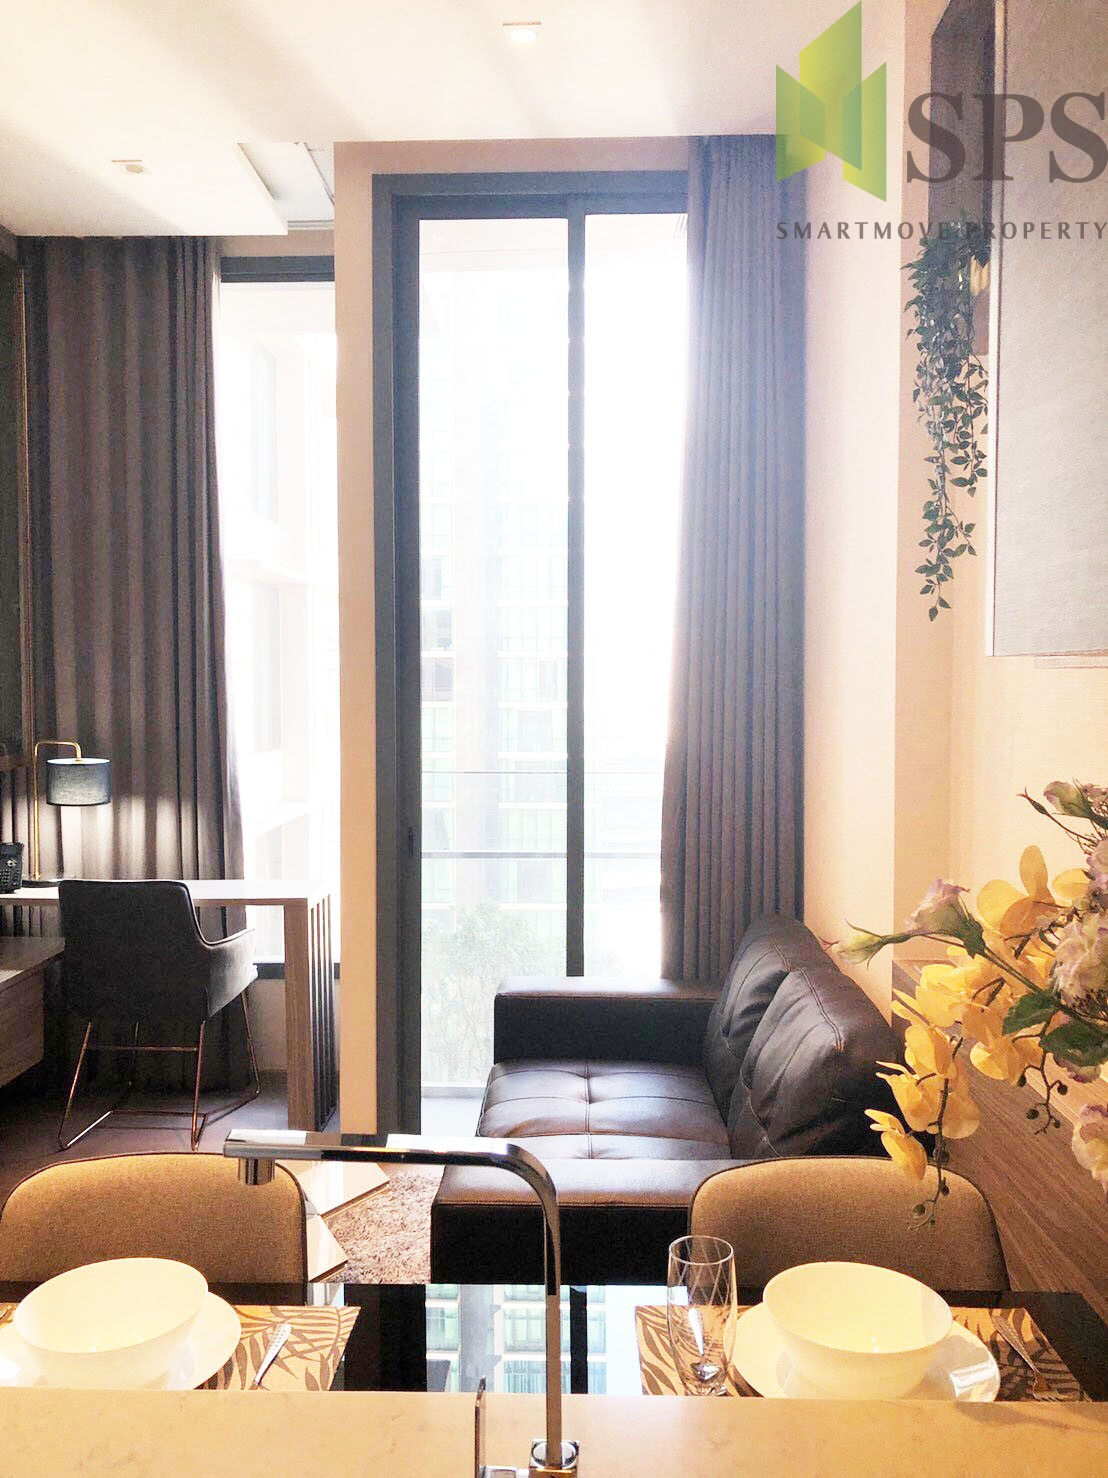 The Esse at Asoke available for rent Contemporary Modern style Ready to move in!!!!(SPS-LN-ESSE-AK21)